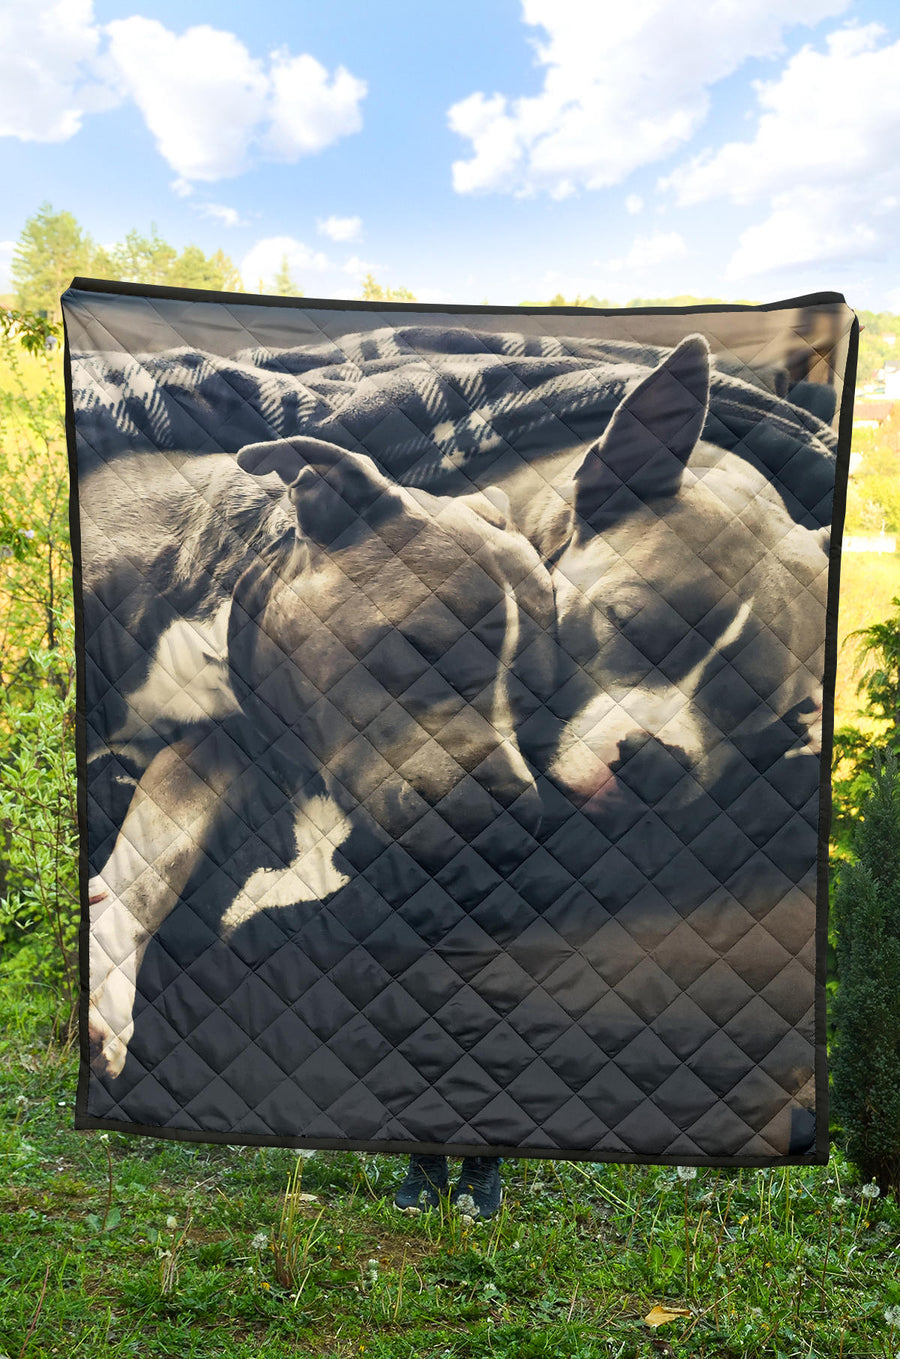 Pitbull Advisory Snuggle Monster Premium Quilt